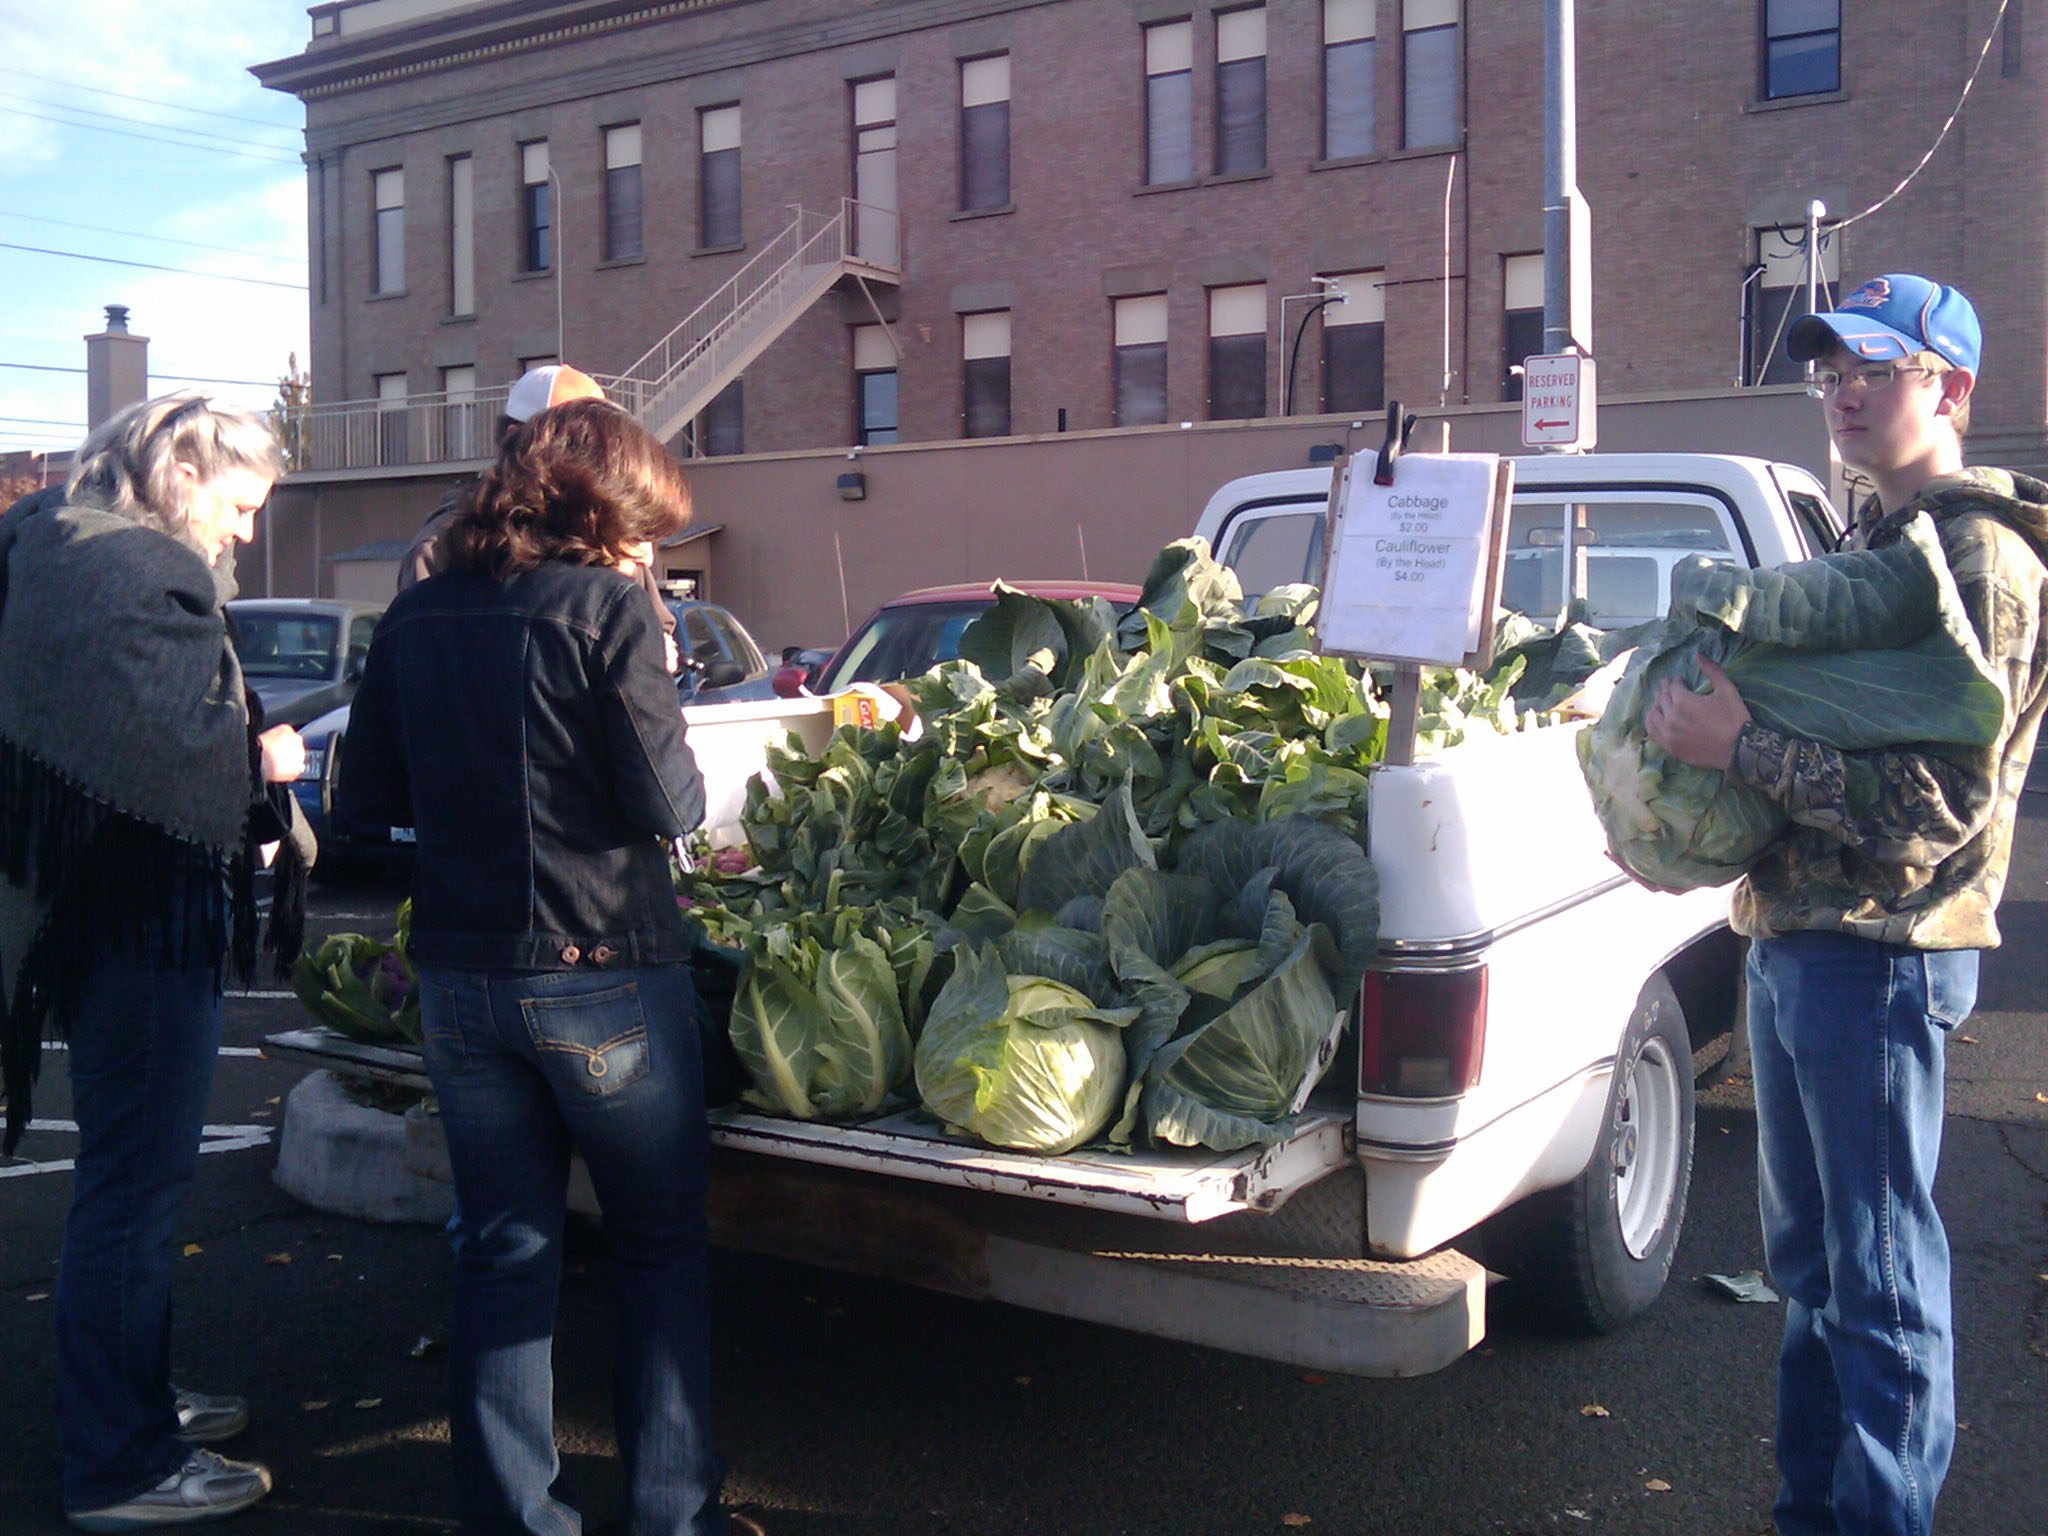 Handsome cabbages perfect for lacto fermenting, probiotics! Farmers' Market Tailgate Sale Walla Walla!